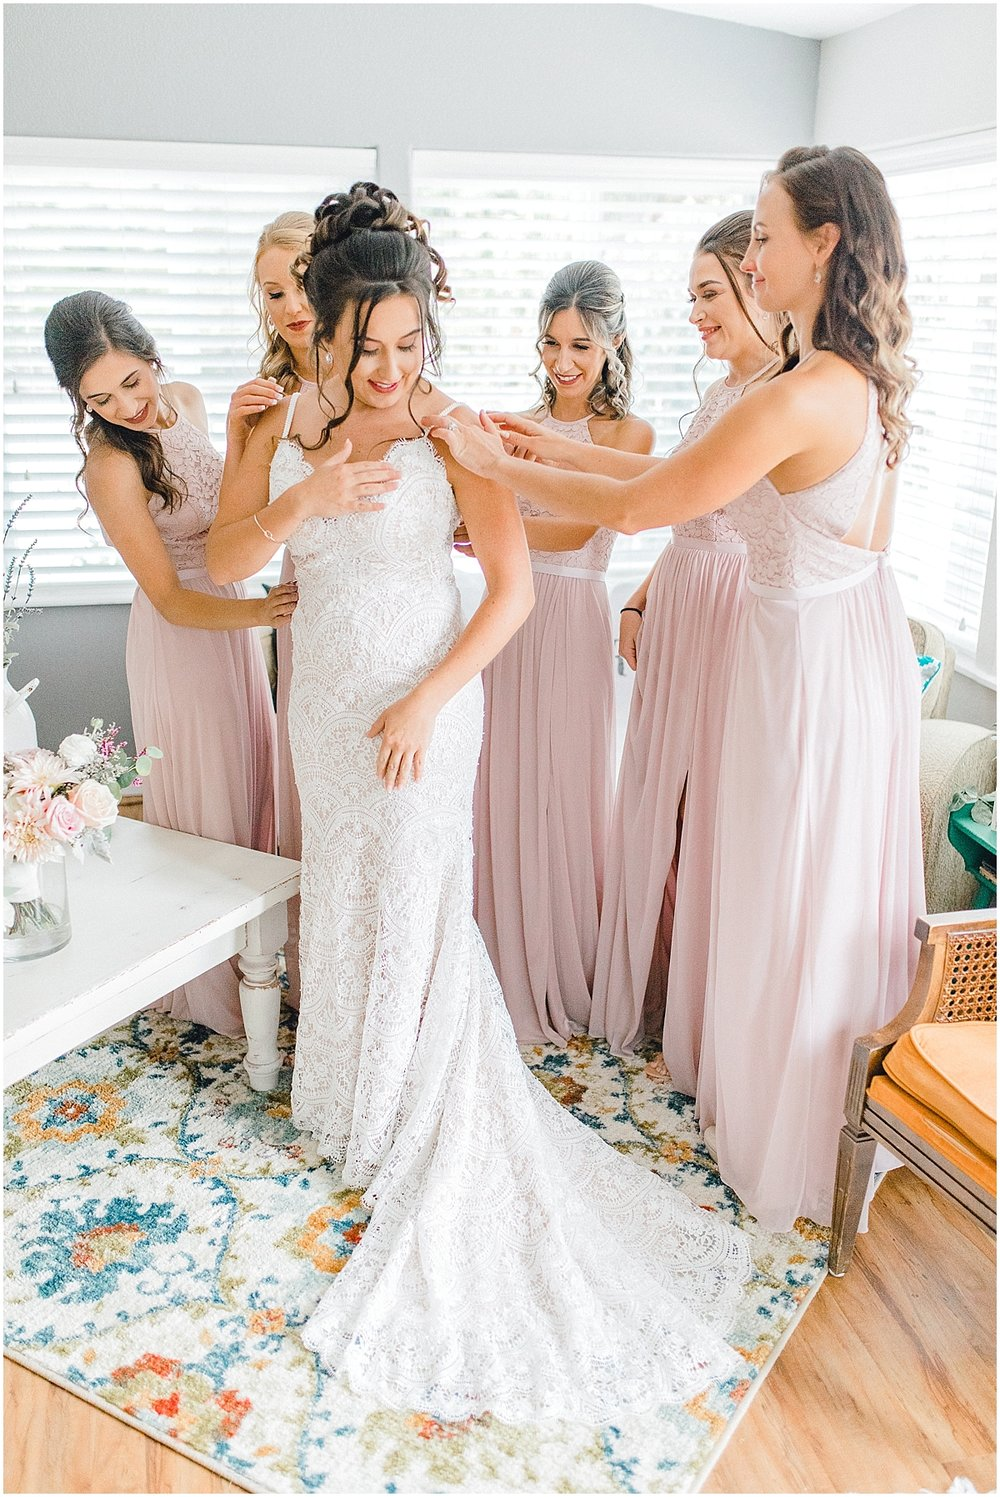 Beautiful mauve wedding in the Pacific Northwest, Emma Rose Company Light and Airy Wedding Photographer Seattle, Washington, Kindred Presets, Wedding Design Details Purple and Blush_0034.jpg